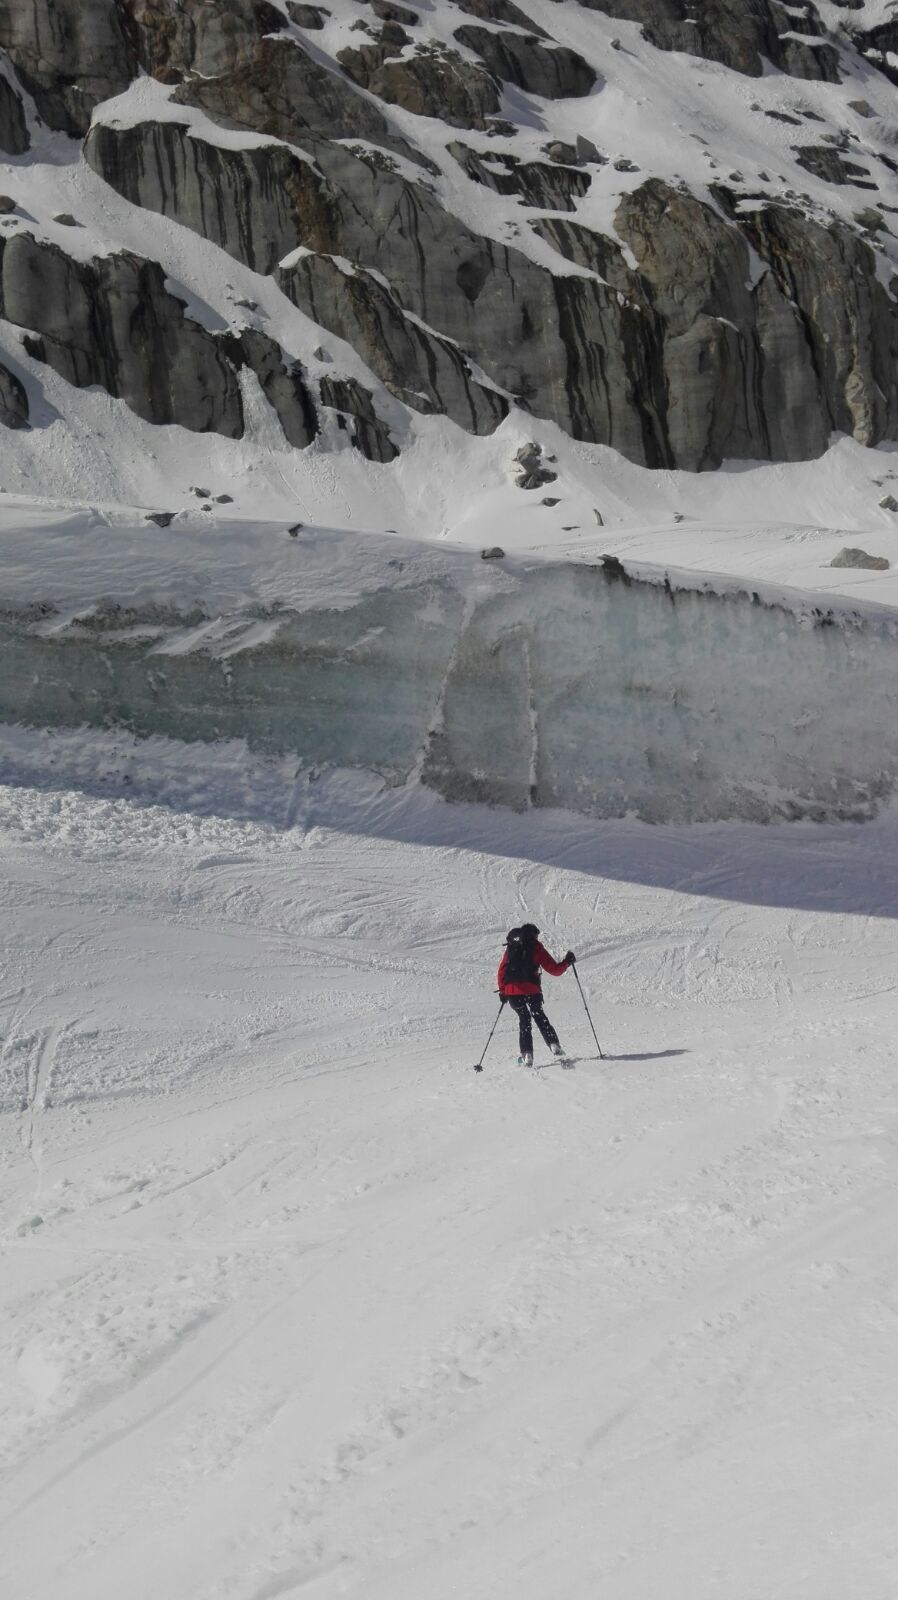 vallee blanche guide alpine proup (19)